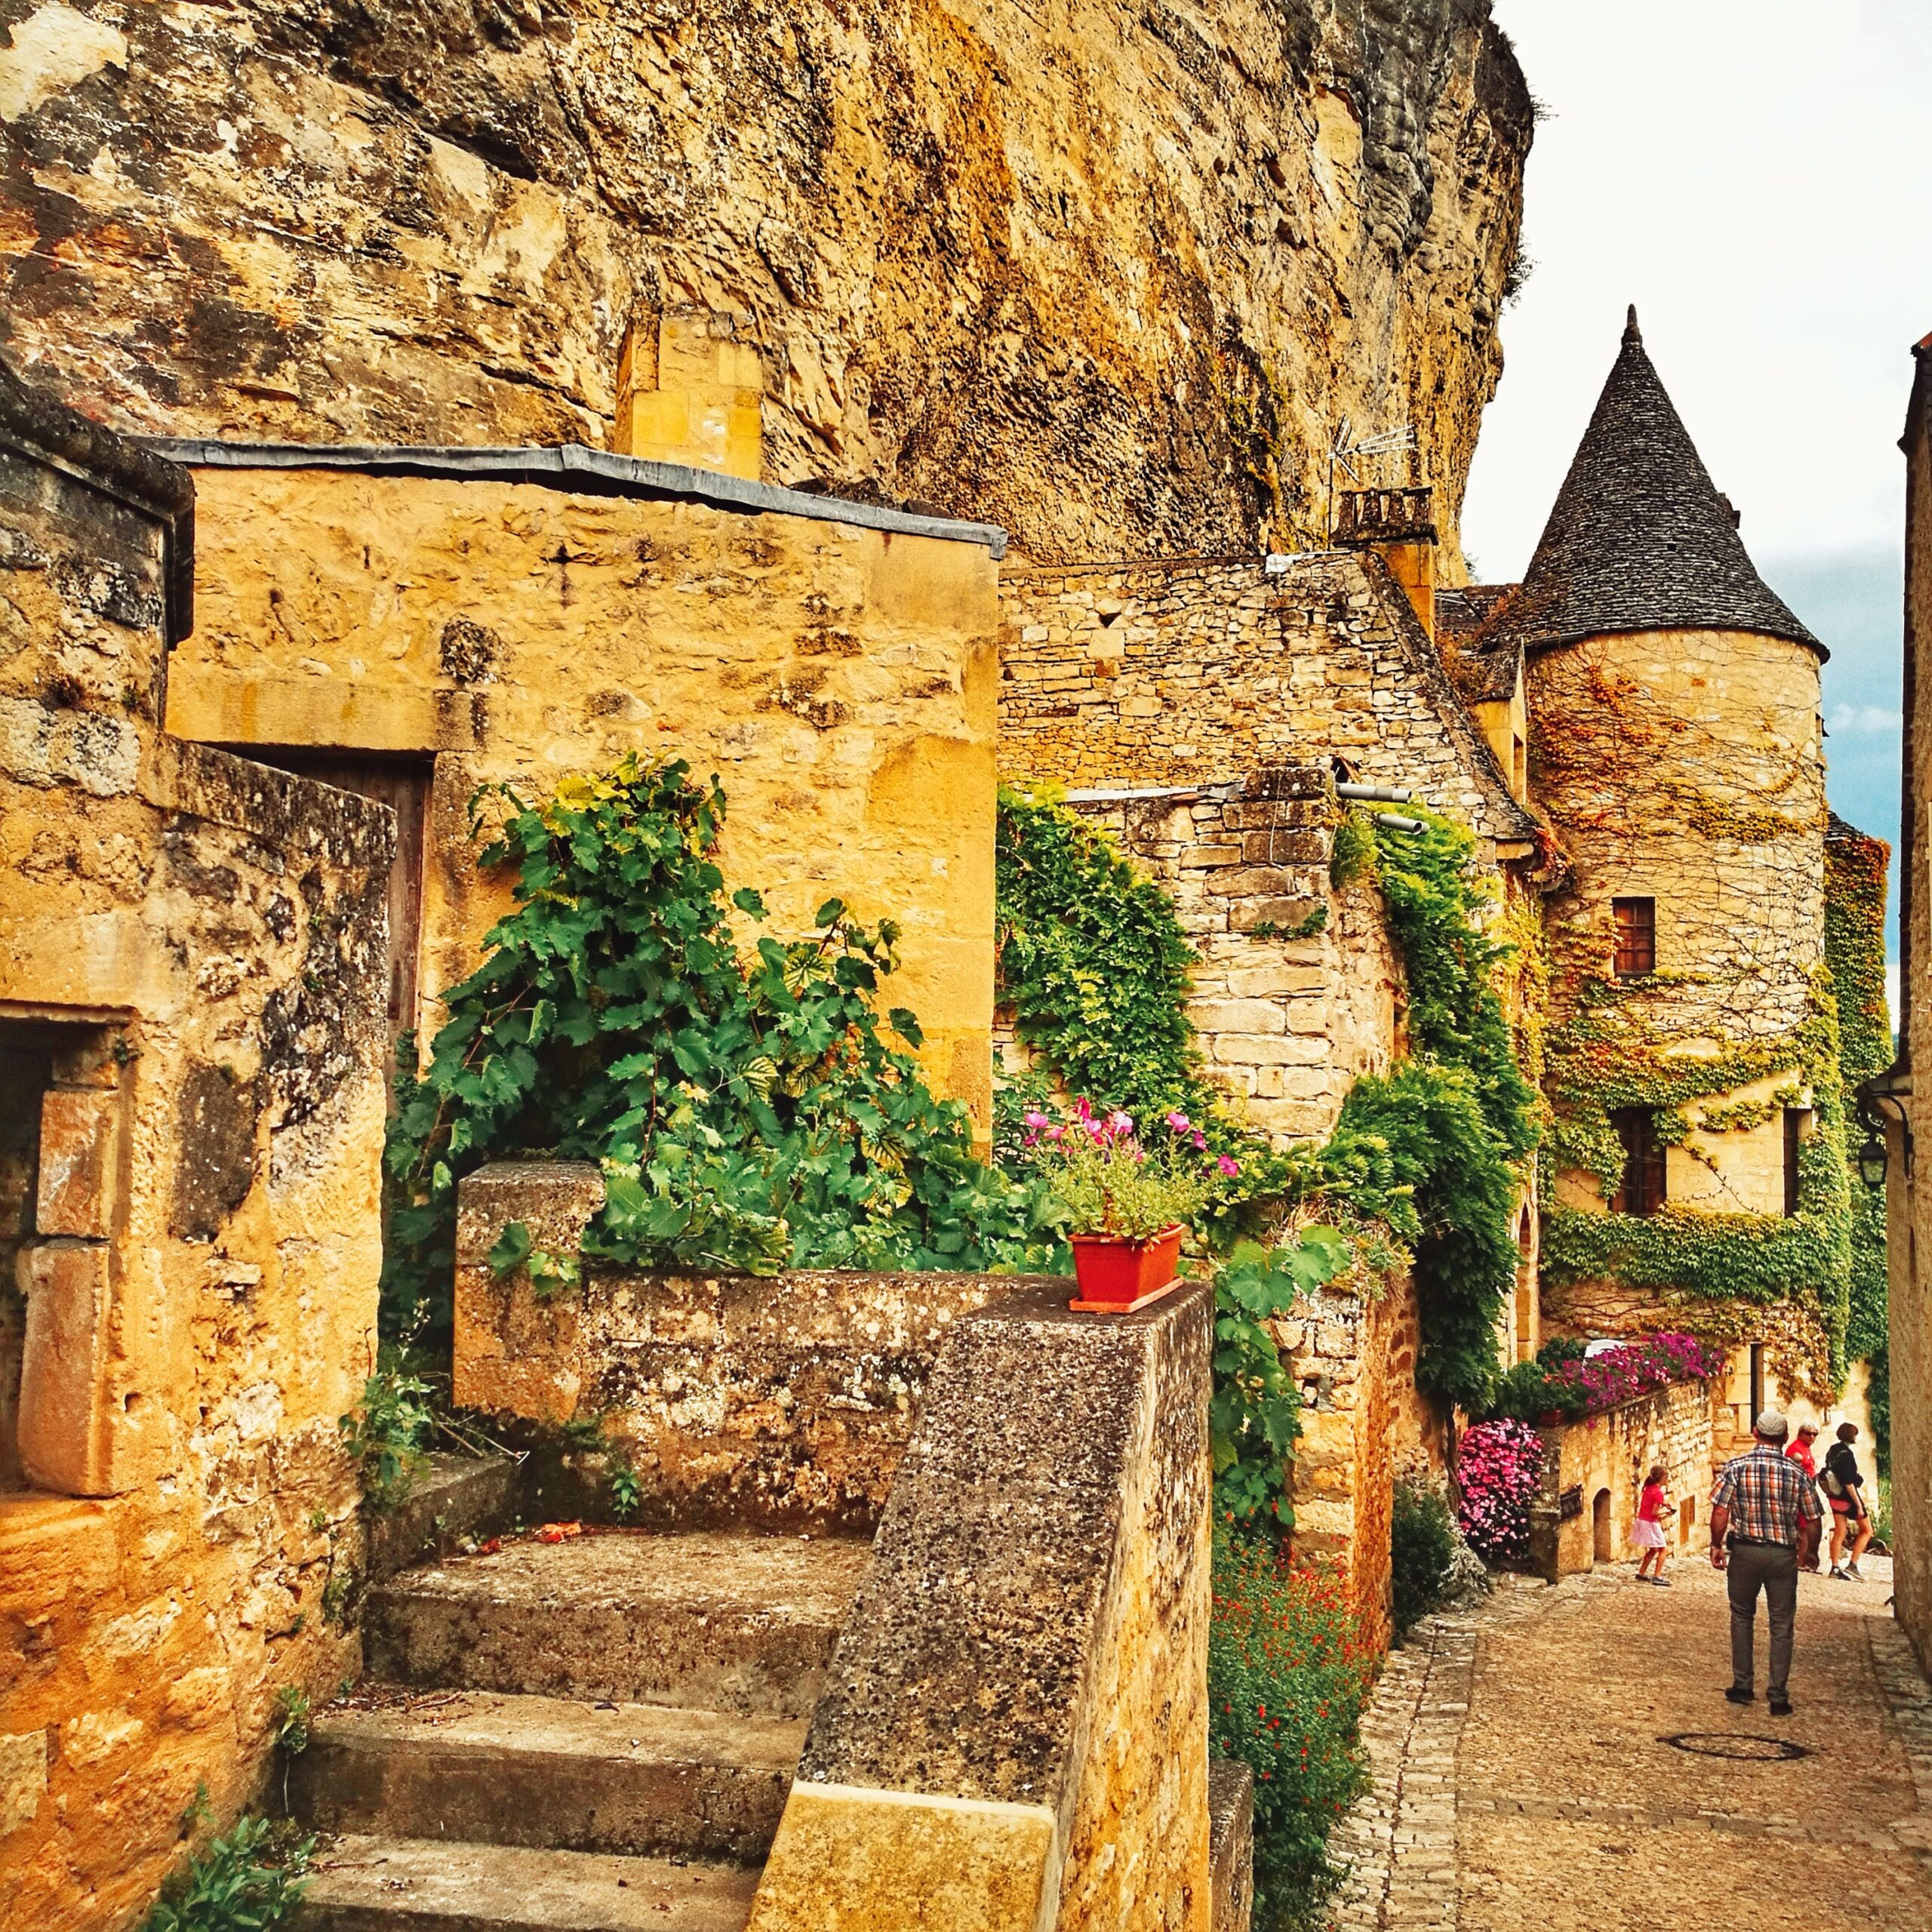 Perigord what to see: 10 of the most beautiful villages in France